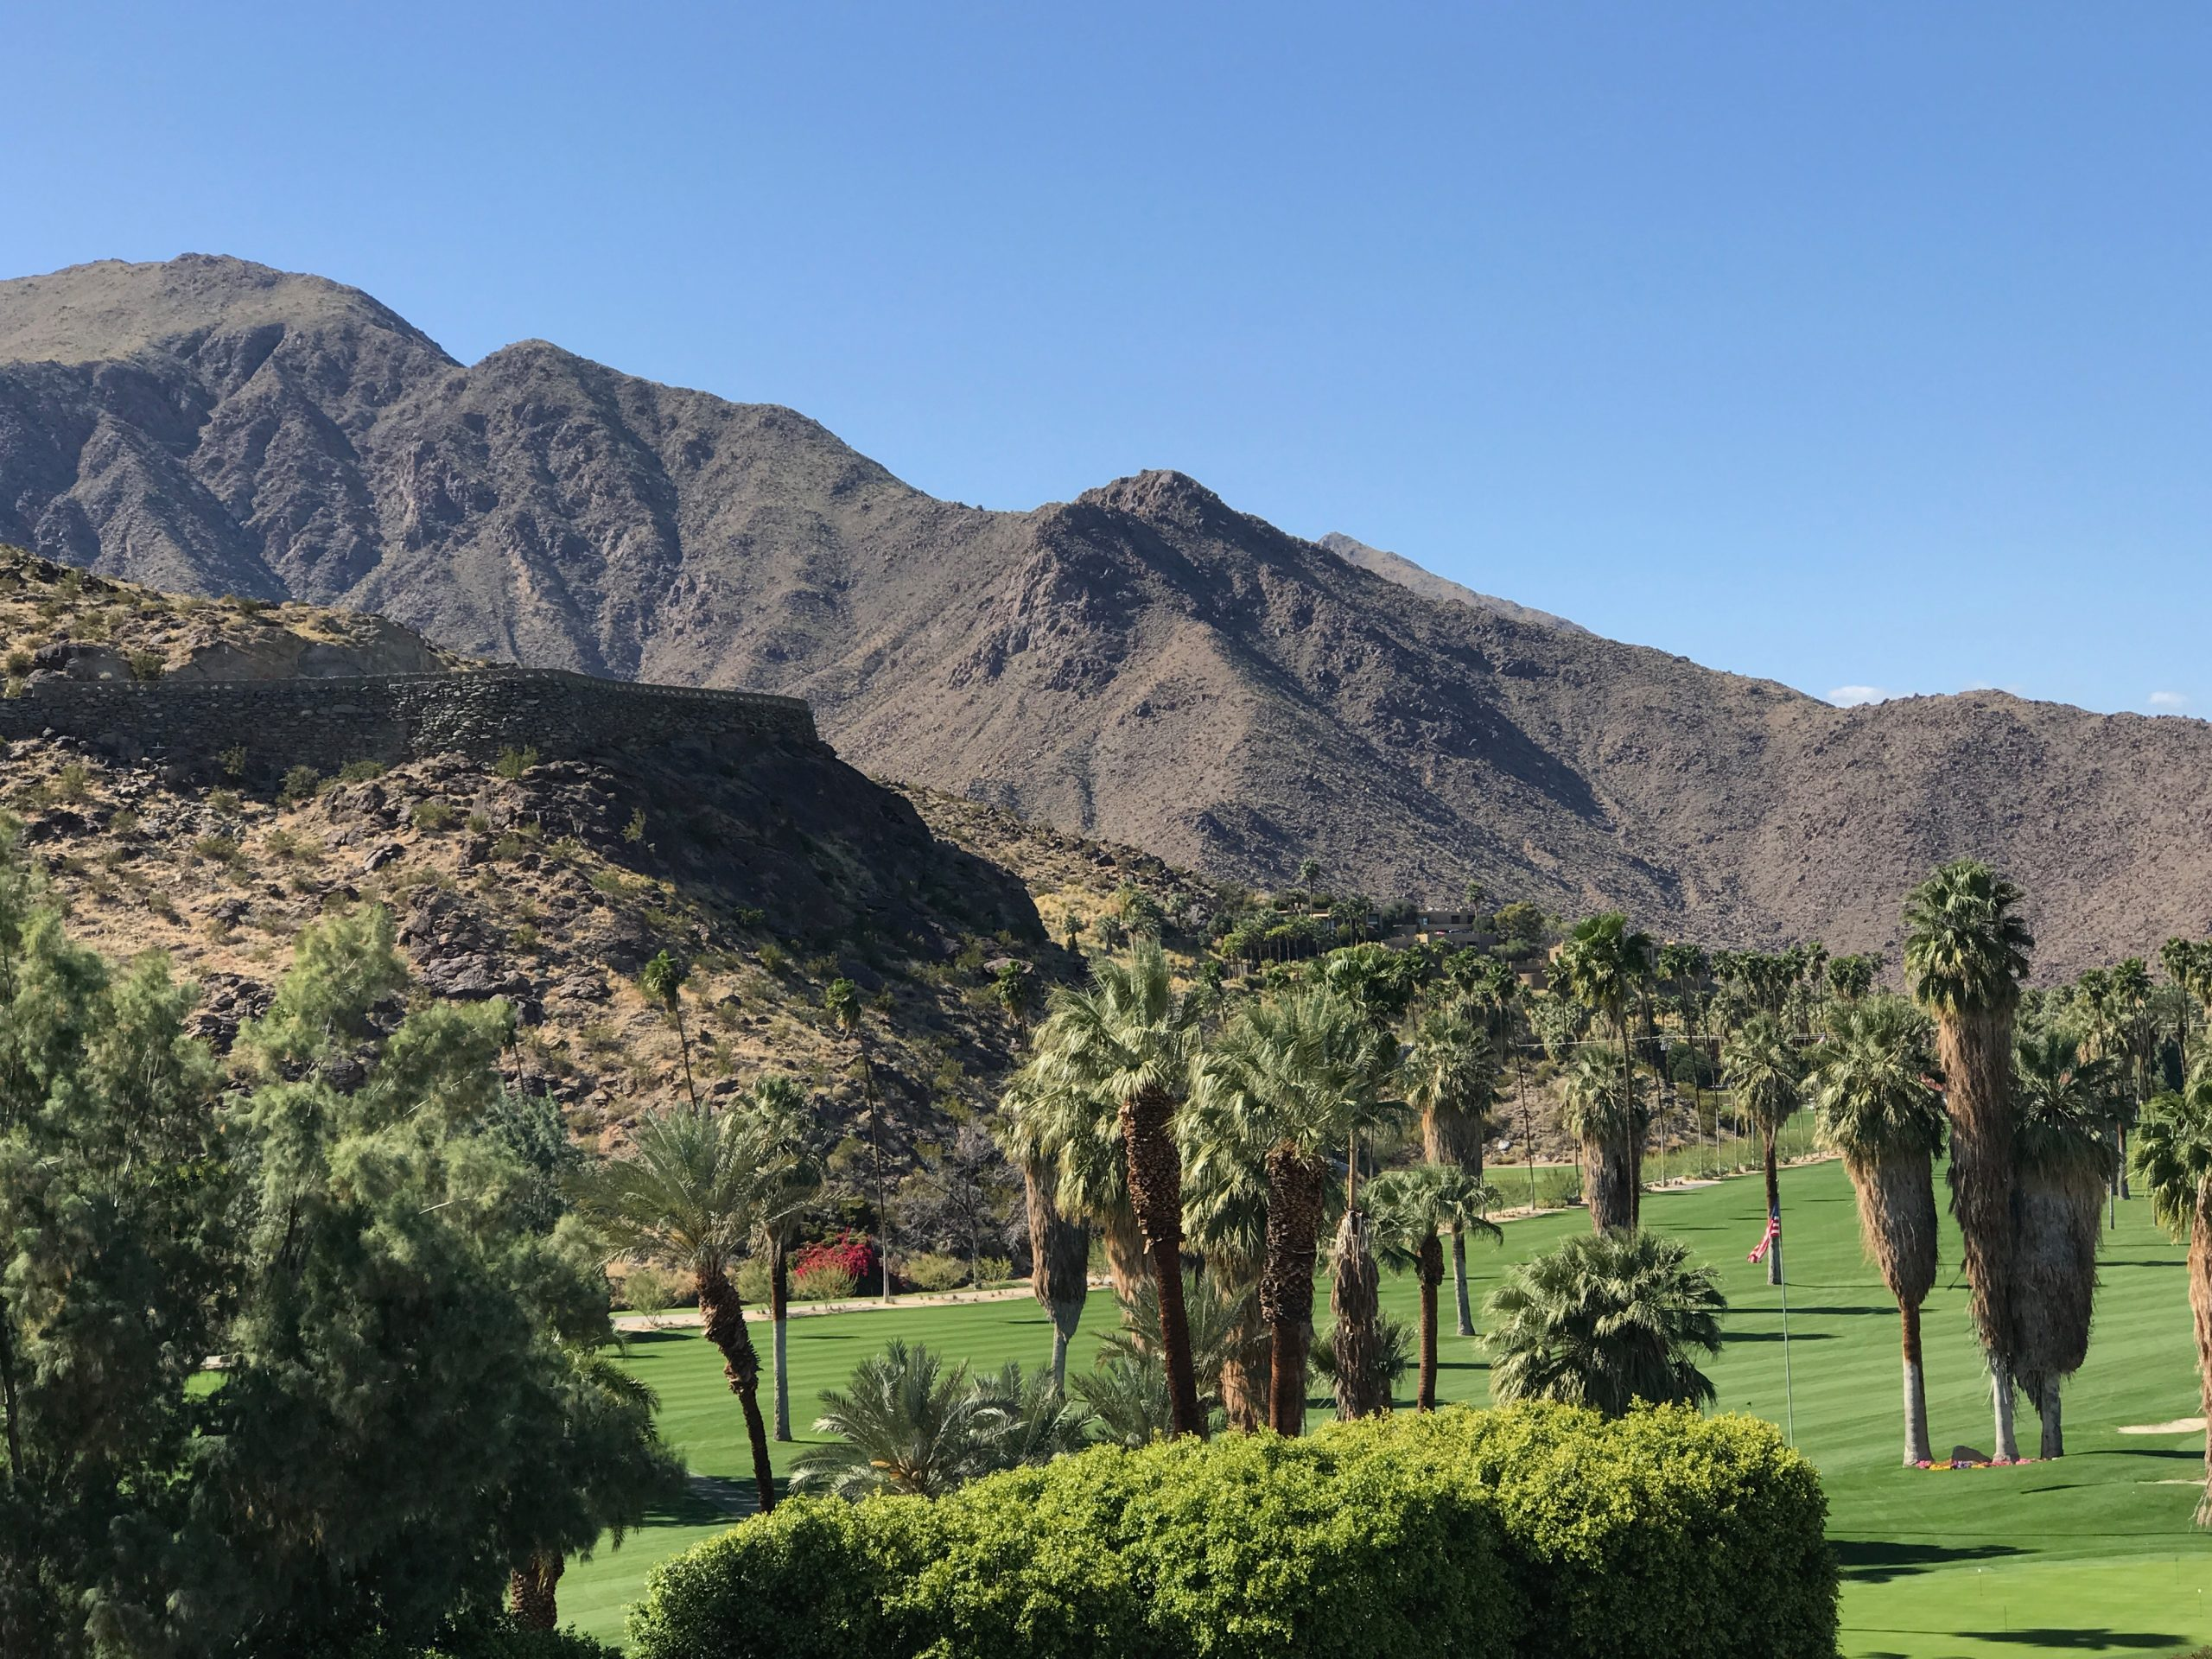 Palm Springs golf course greens with mountains in the background